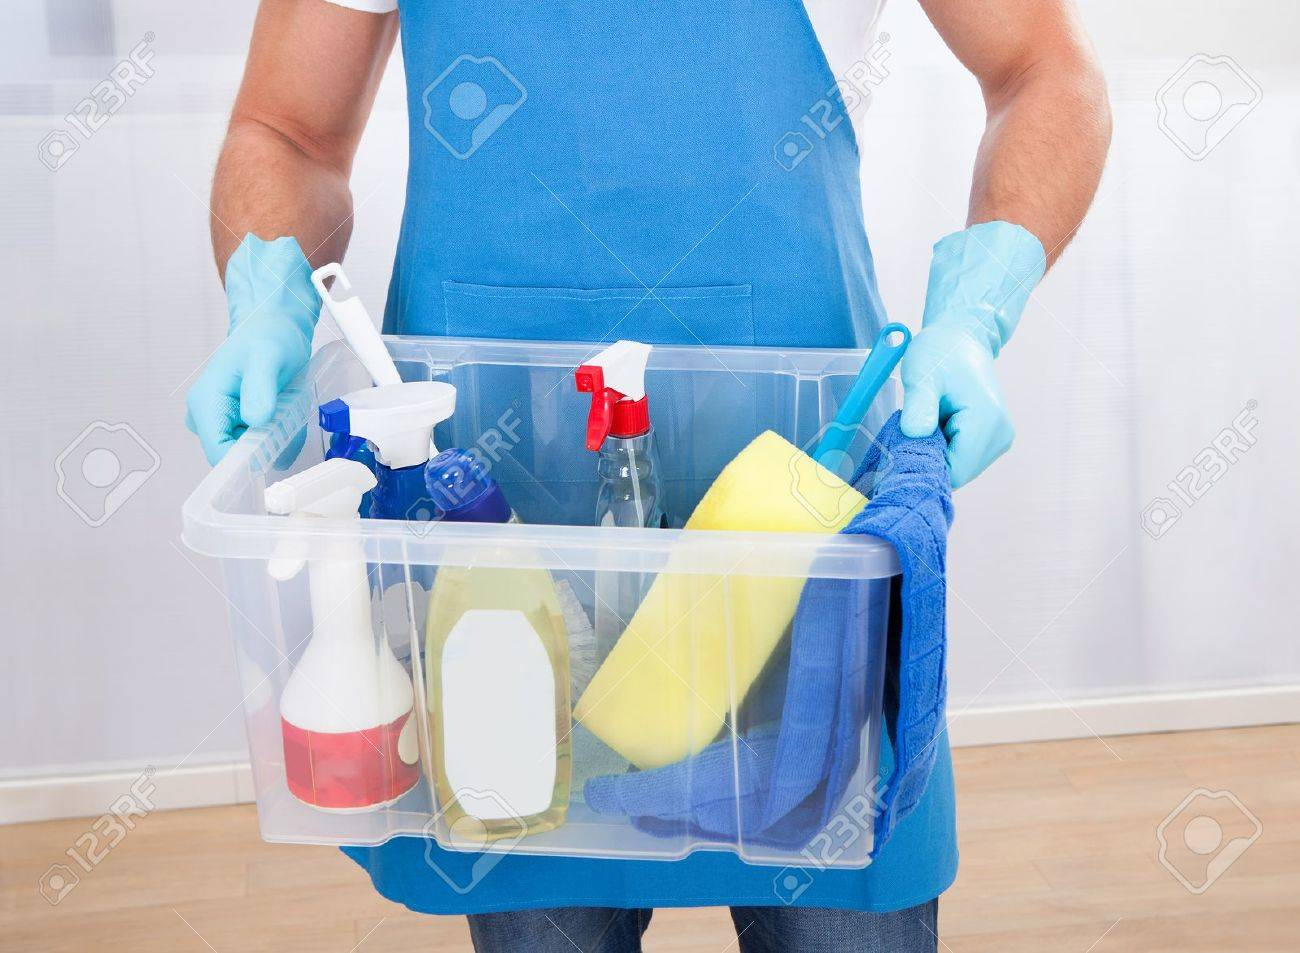 Janitor Or Cleaner Wearing An Apron And Gloves Carrying A Tub ...